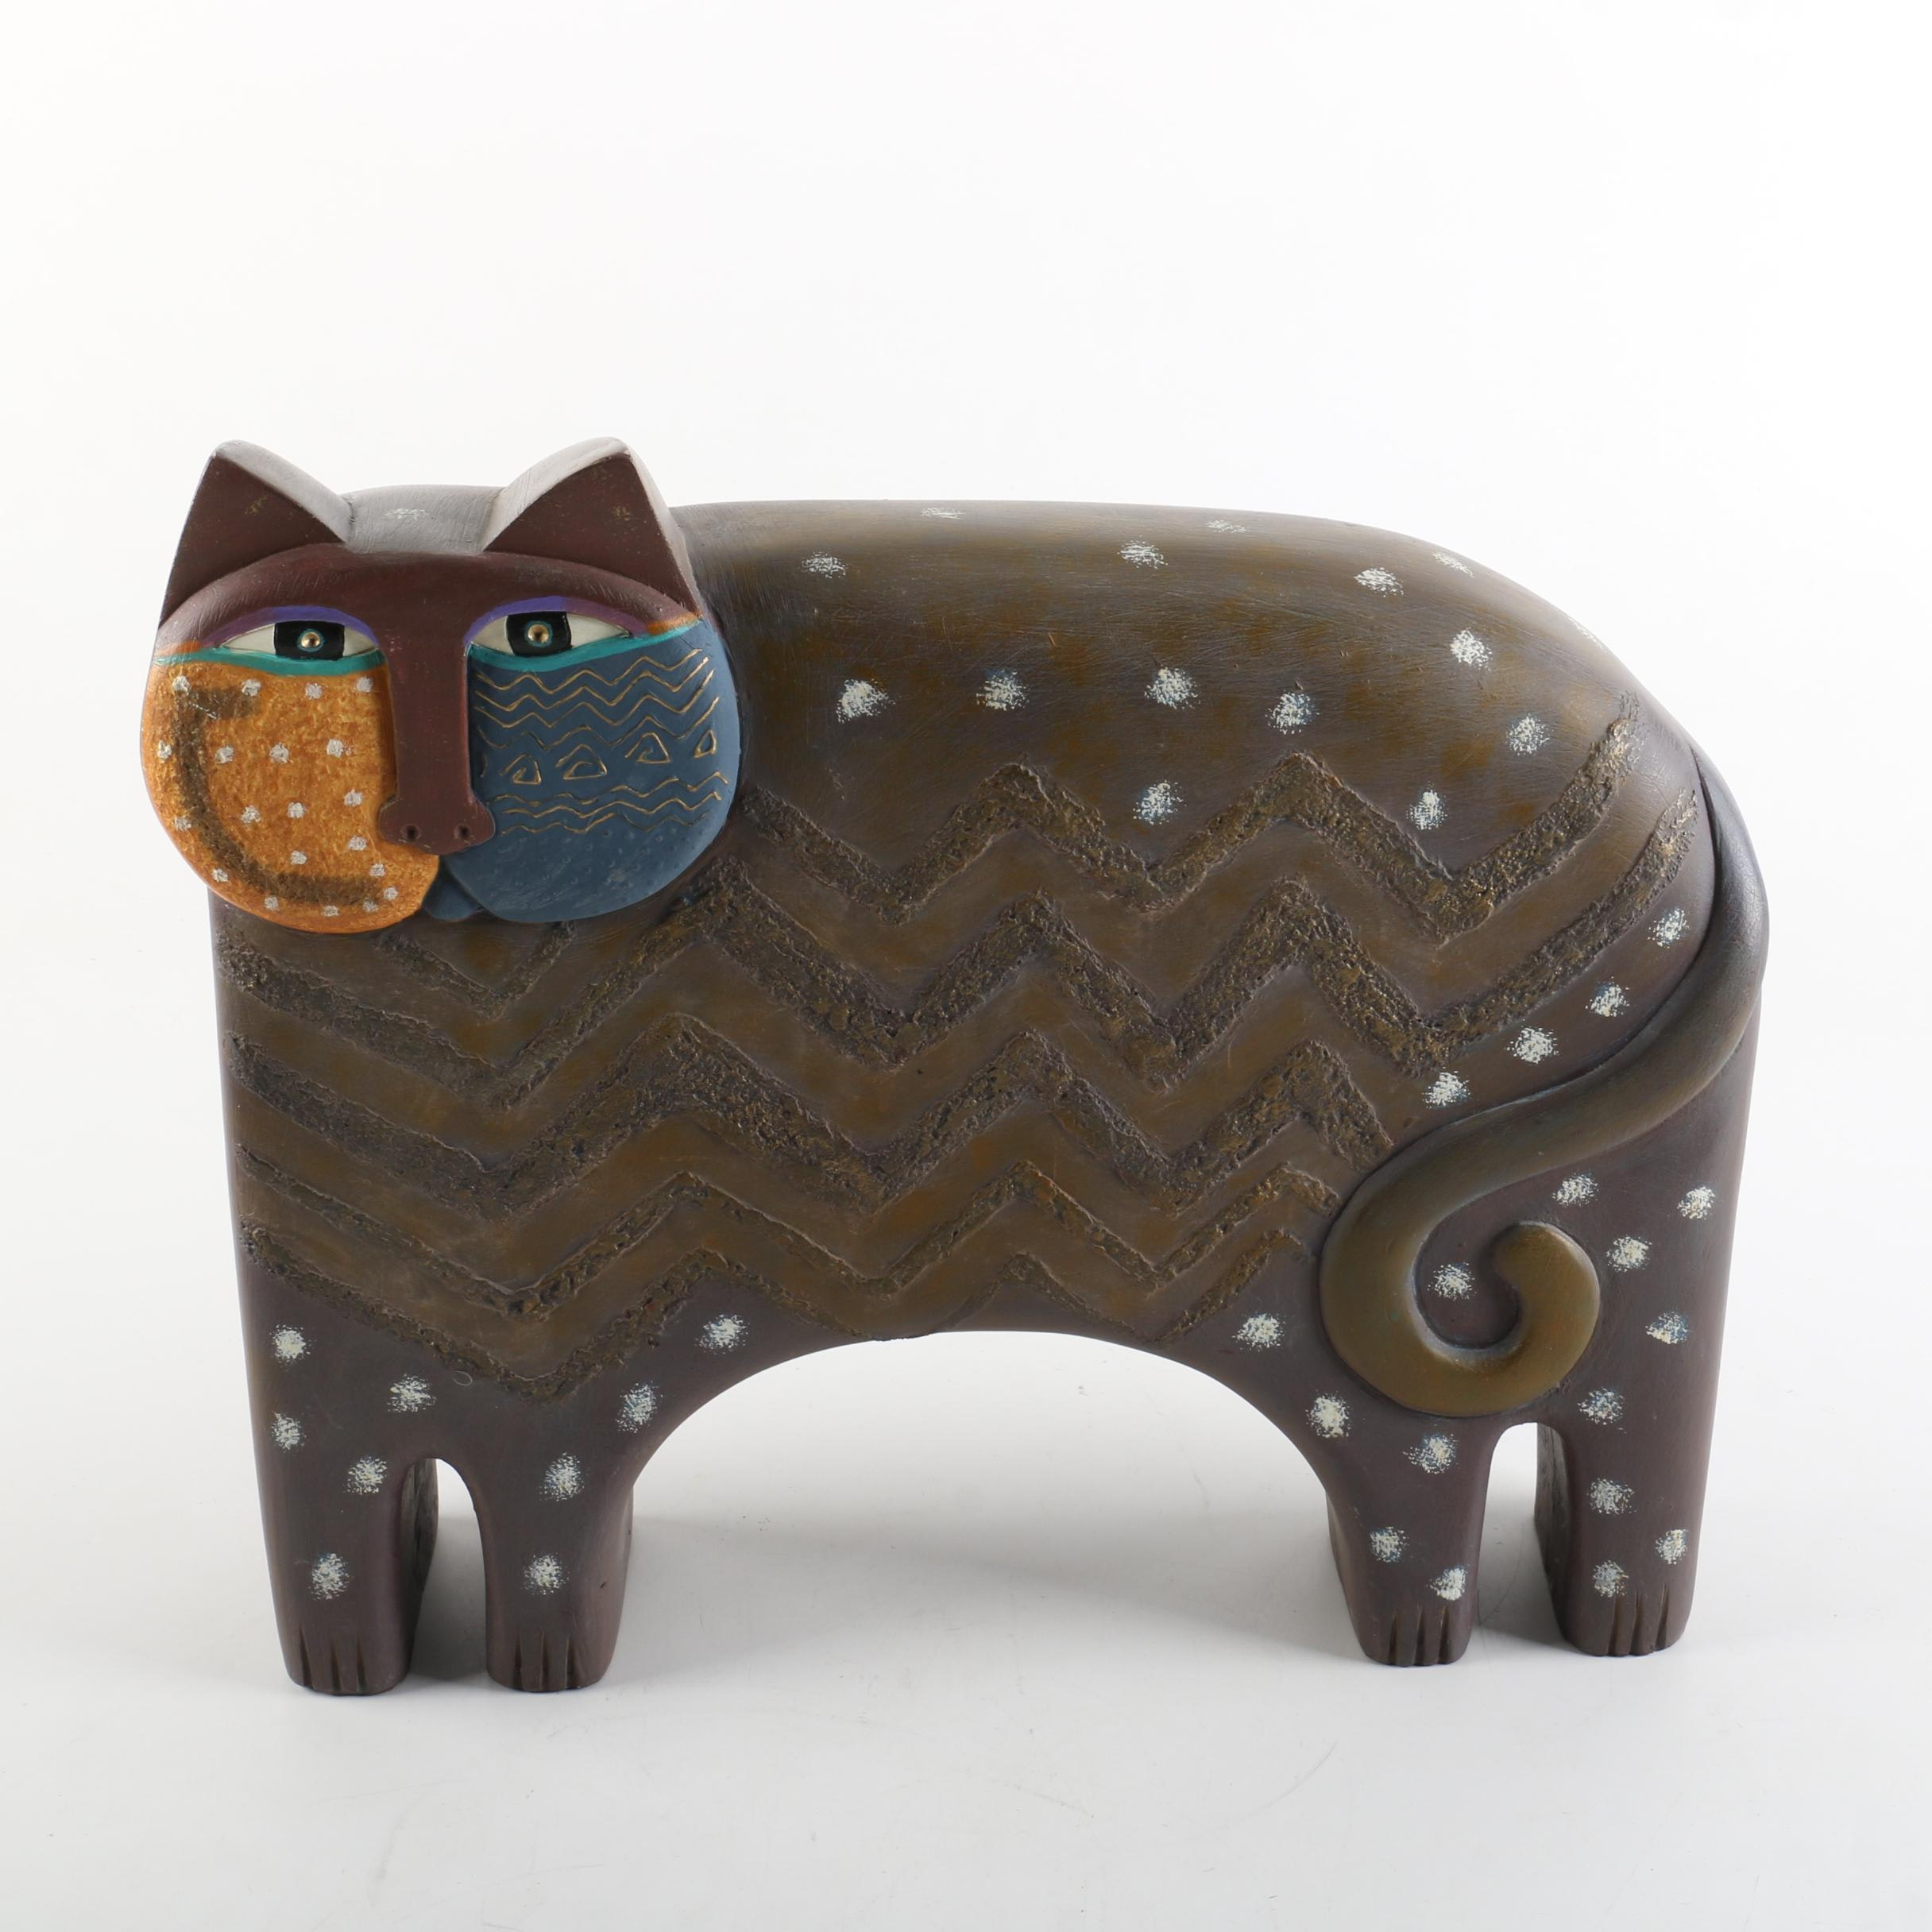 1999 Laurel Burch Composite Stylized Cat Figurine